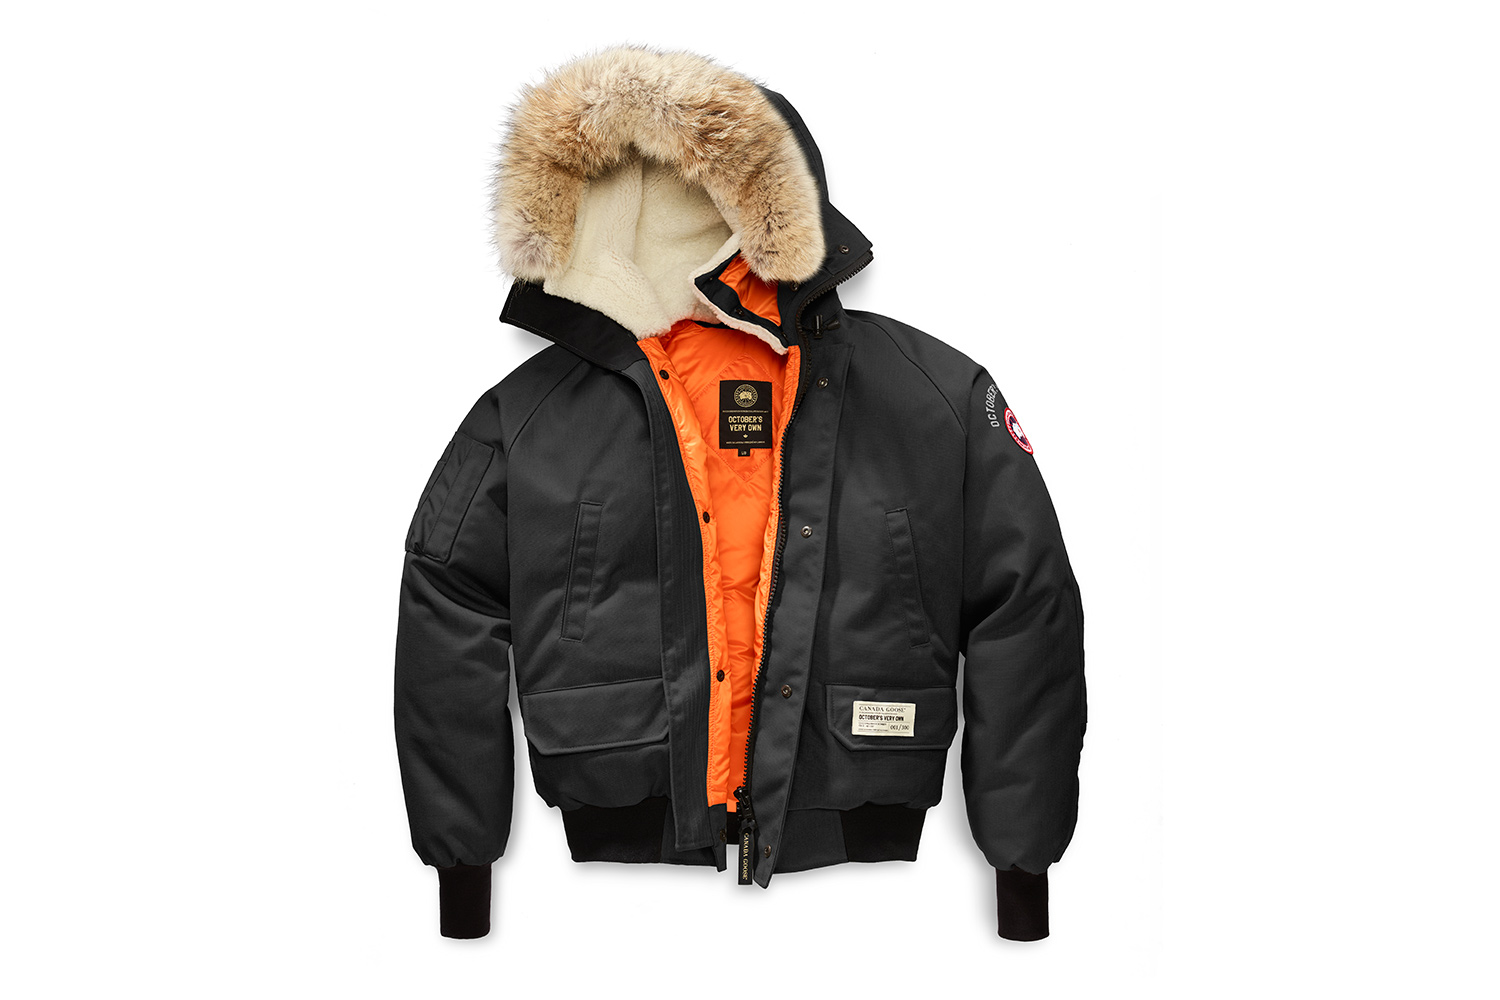 OVO Collaborate With Canada Goose On Outerwear and Headwear